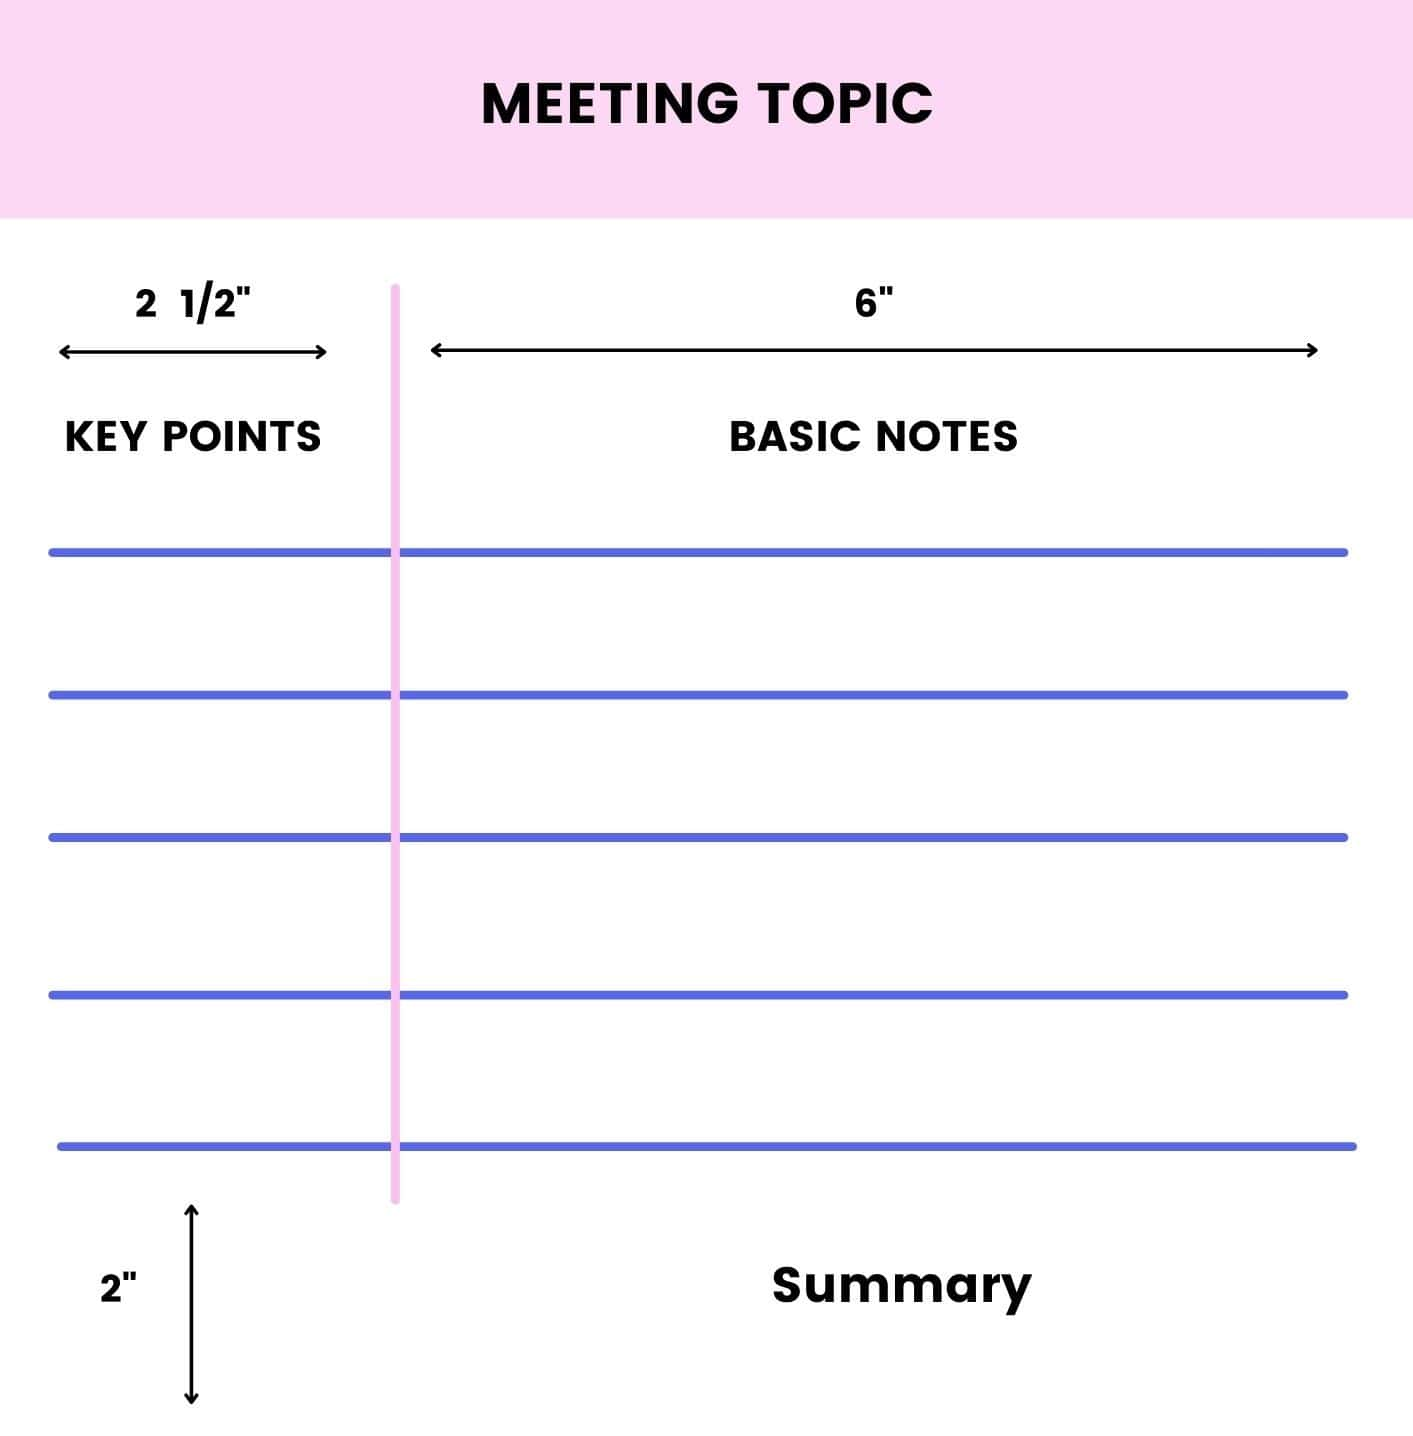 the cornell note taking methods for taking meeting notes helps in making concise notes that can be shared with the teammates